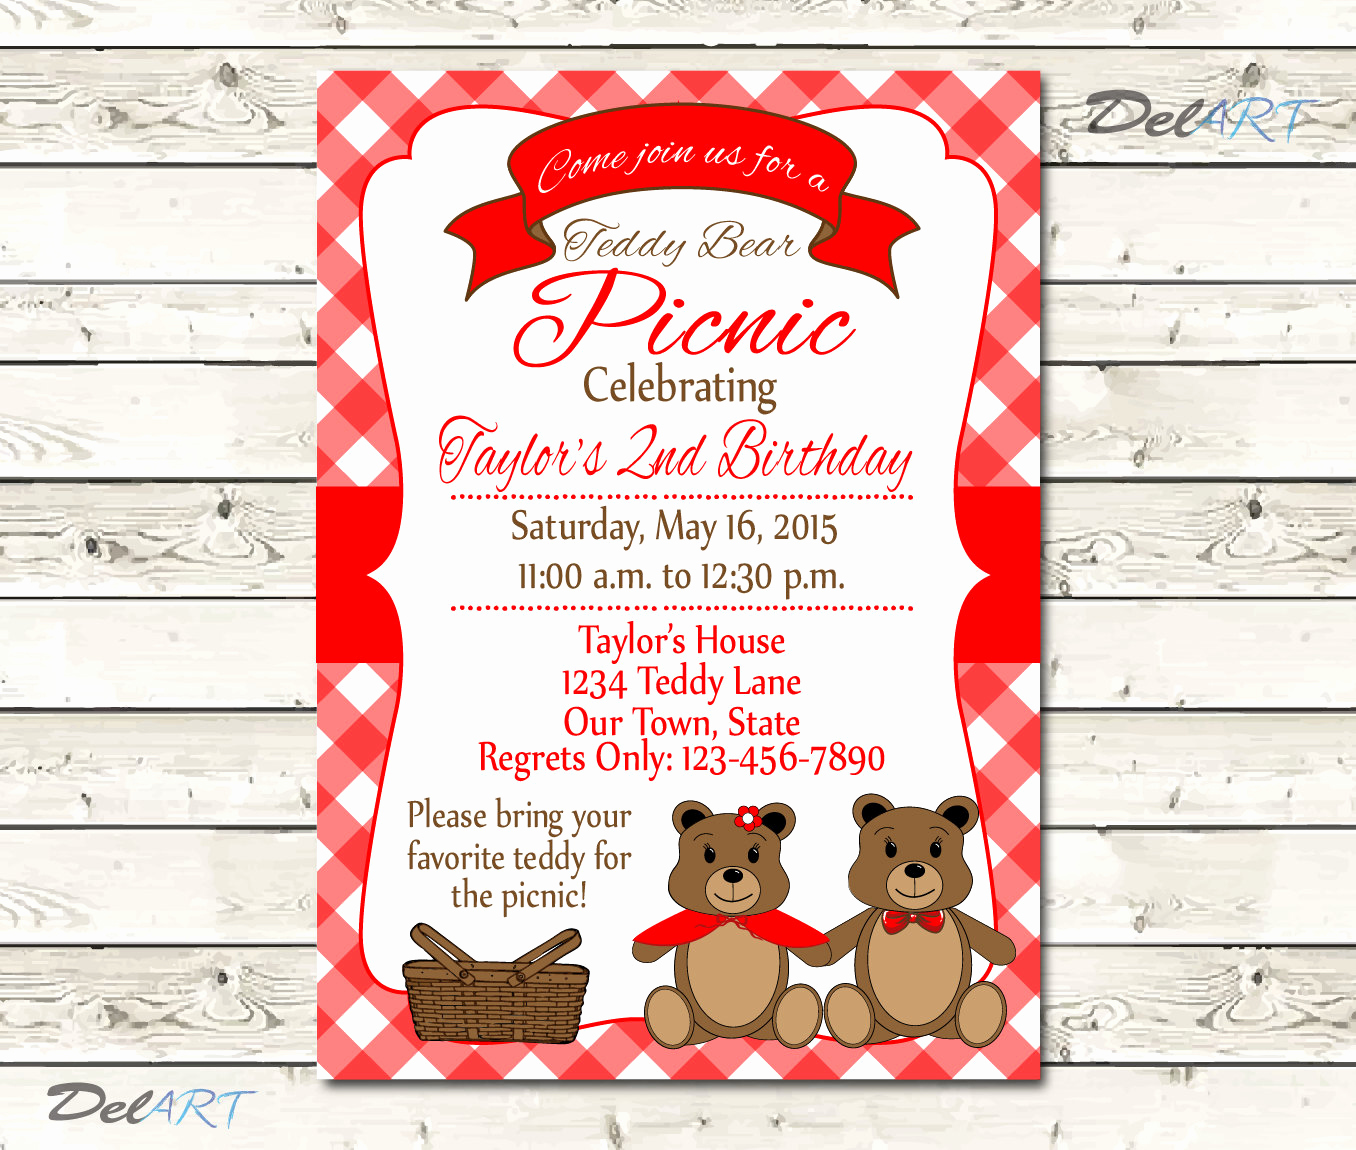 Teddy Bear Picnic Invitation Best Of Teddy Bear Picnic Invitation or Save the Date Digital File